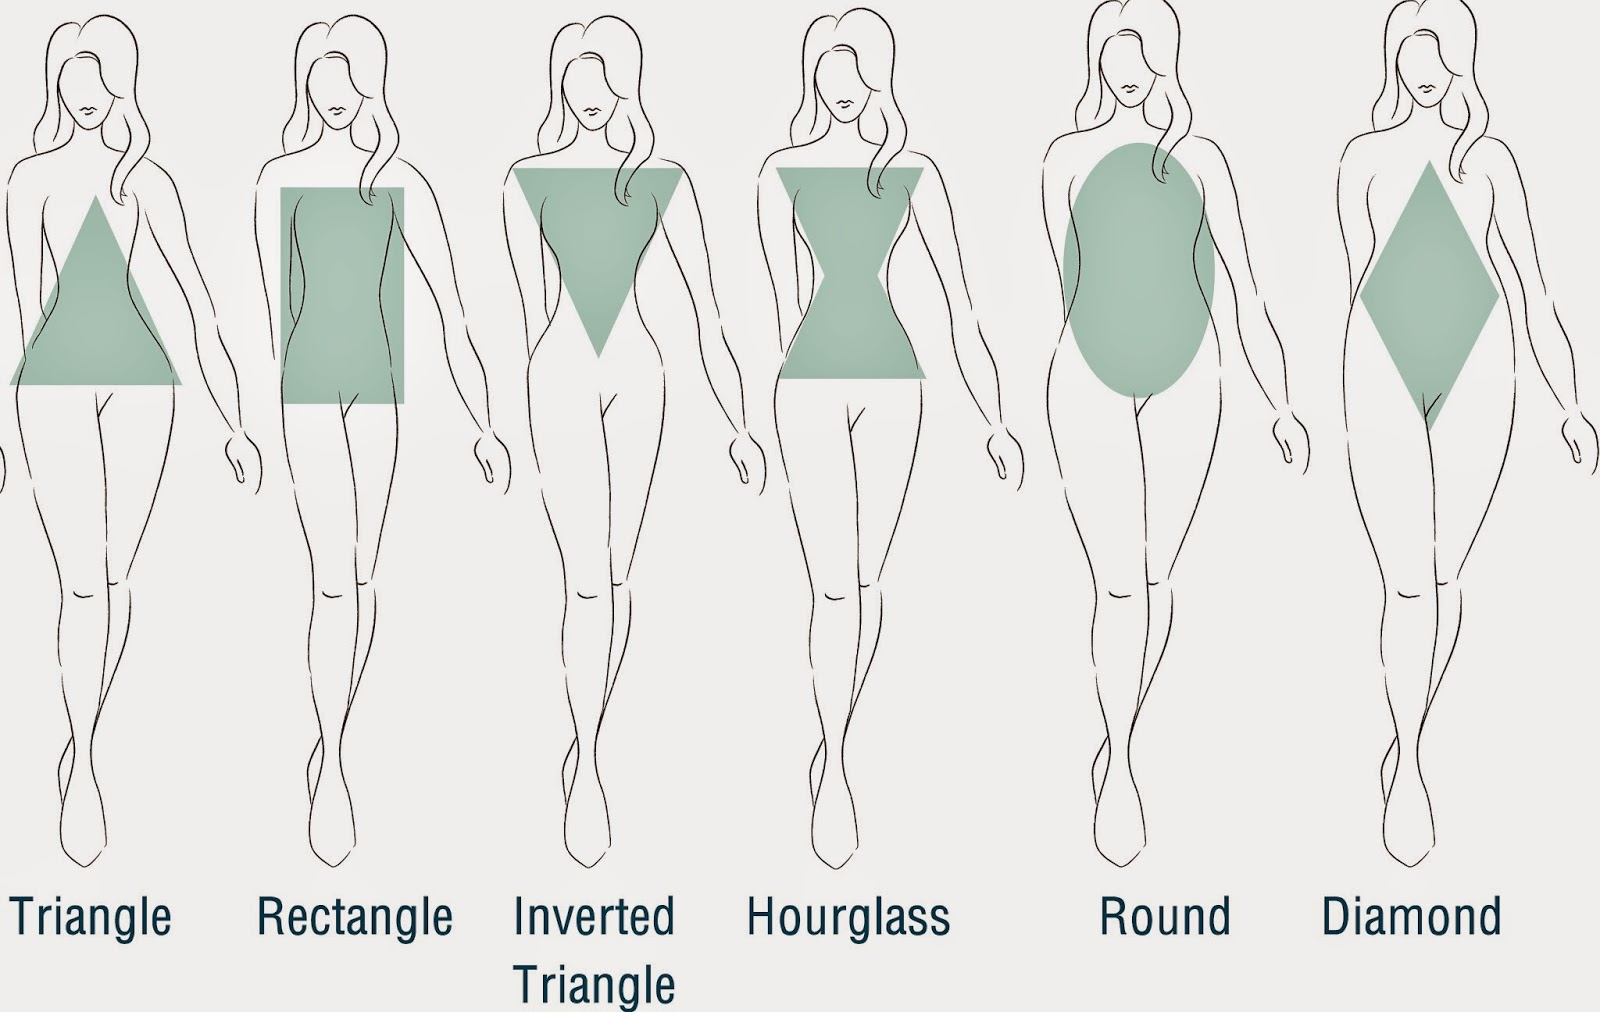 How to know different female body shapes the womenplaza how to know different female body shapes reviewsmspy